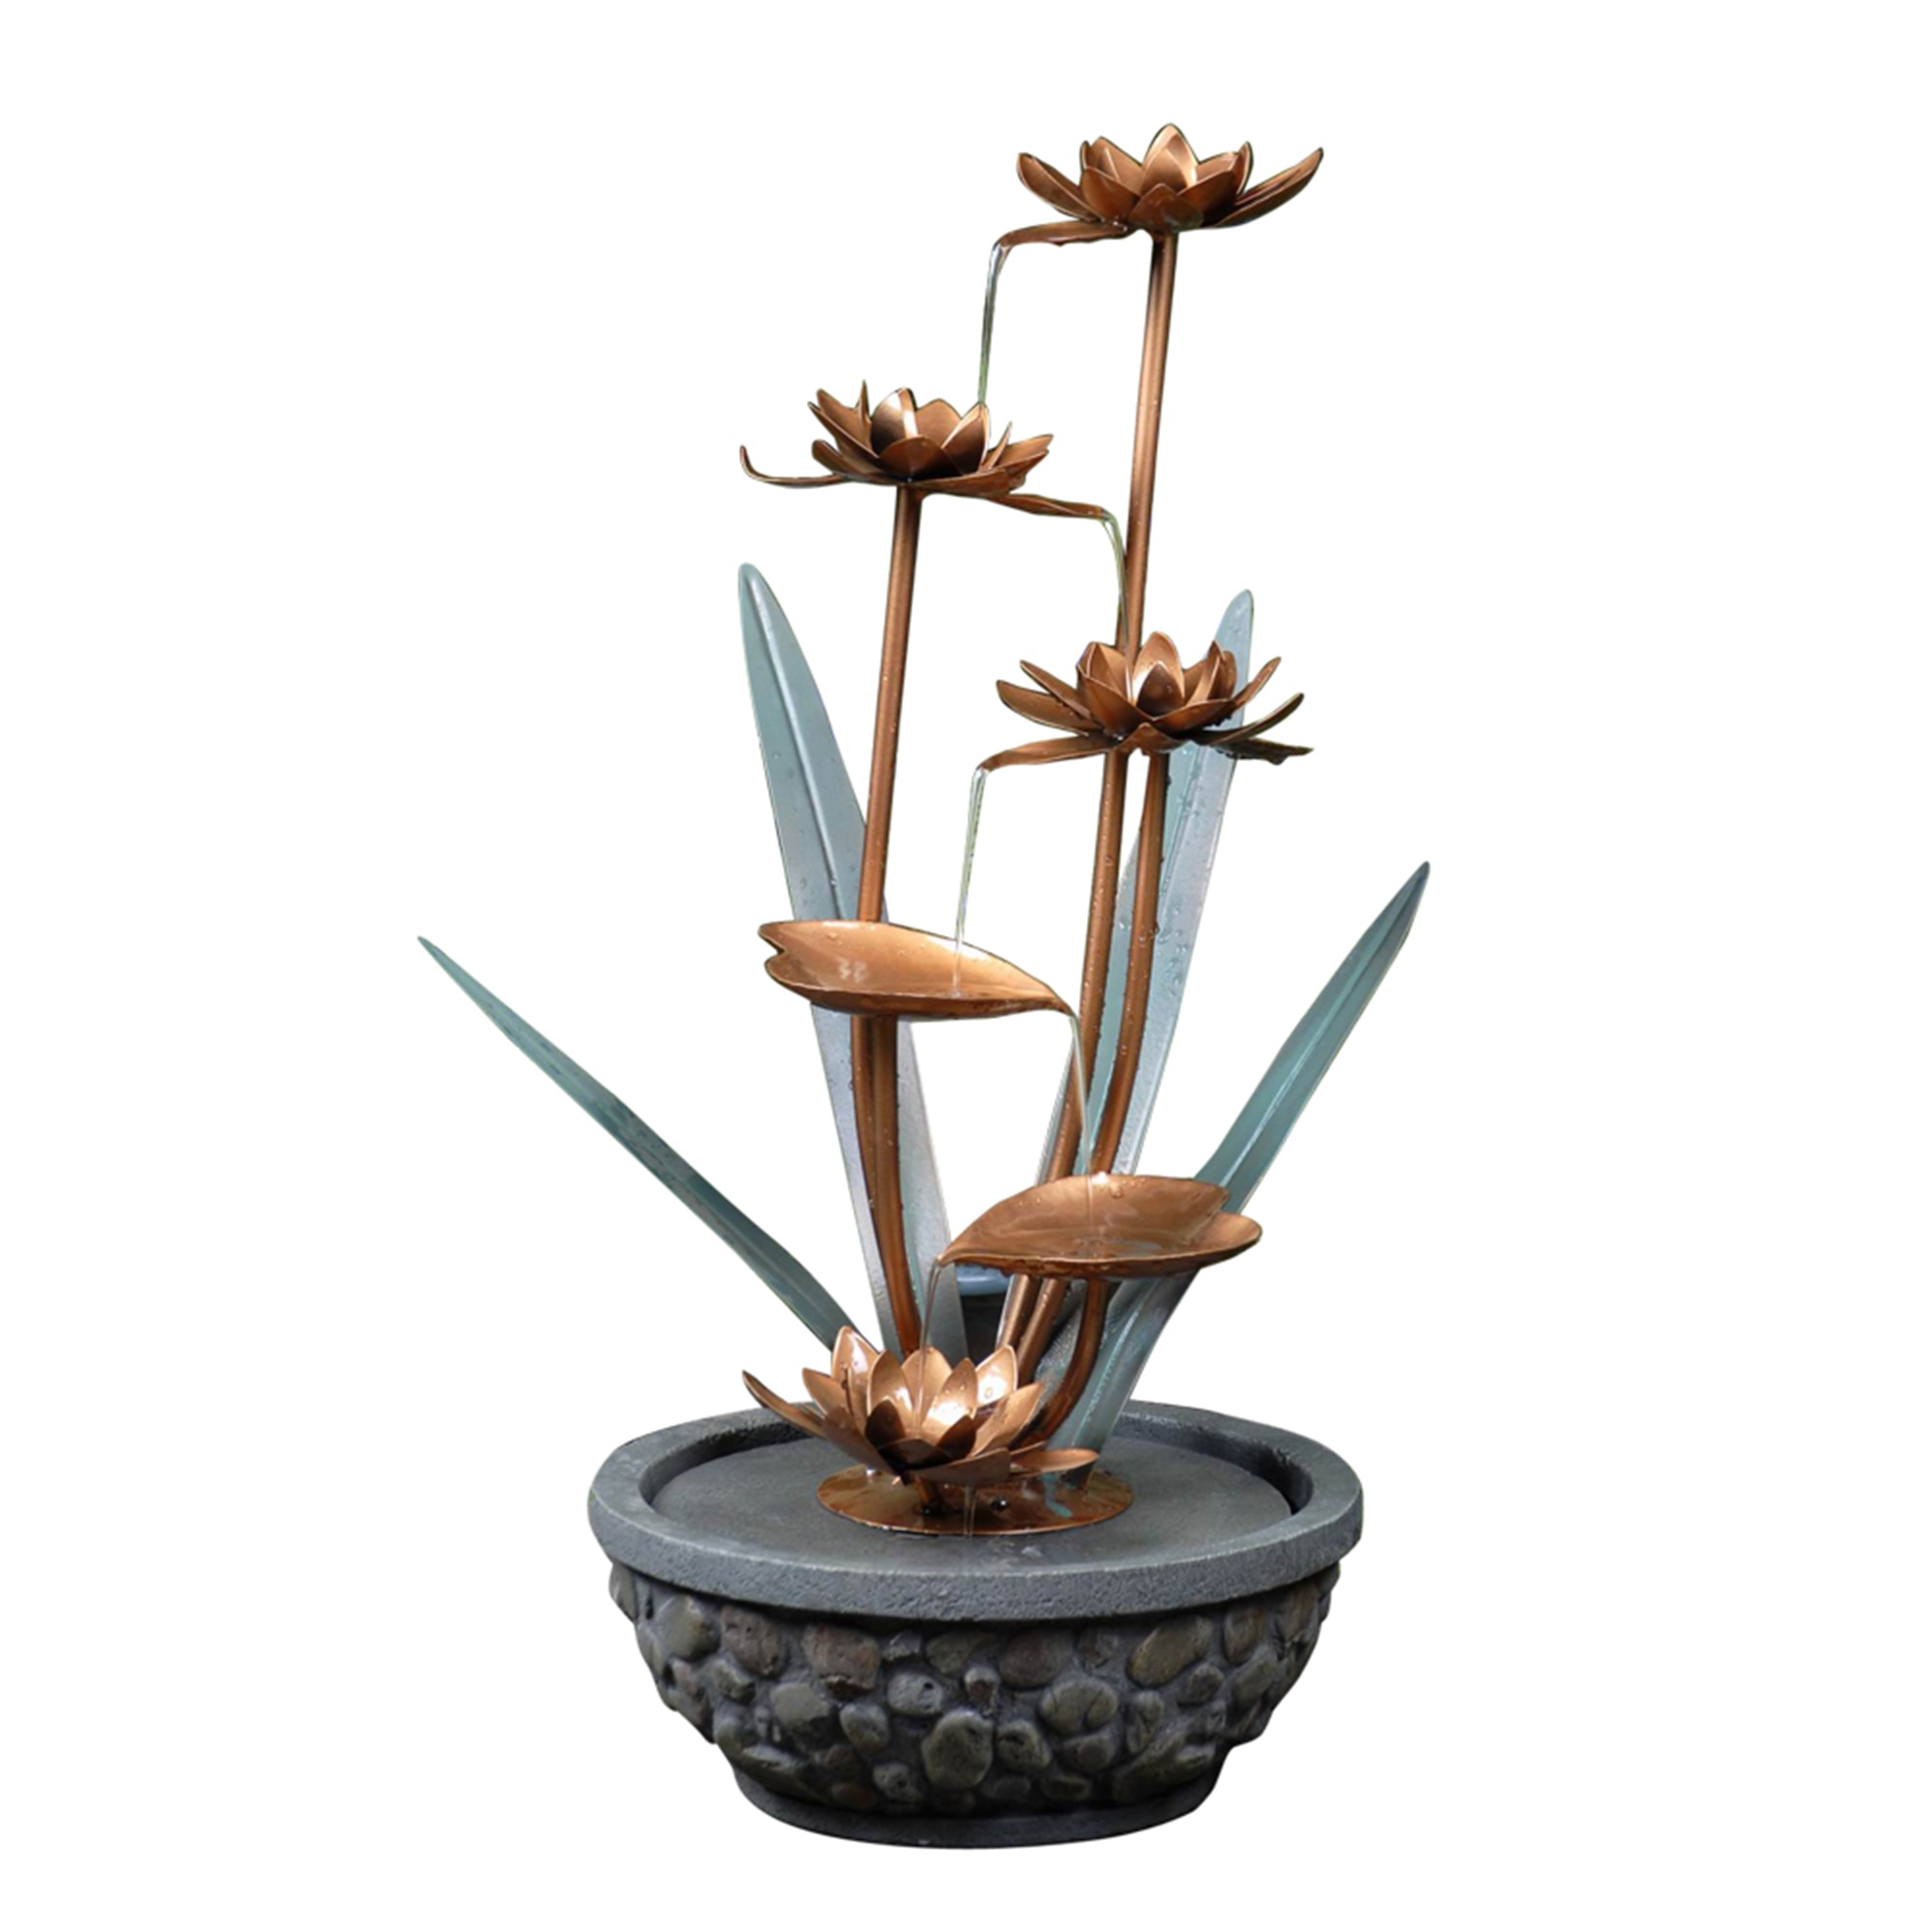 Kontiki water features decorative accent fountains metal for Ornamental garden features